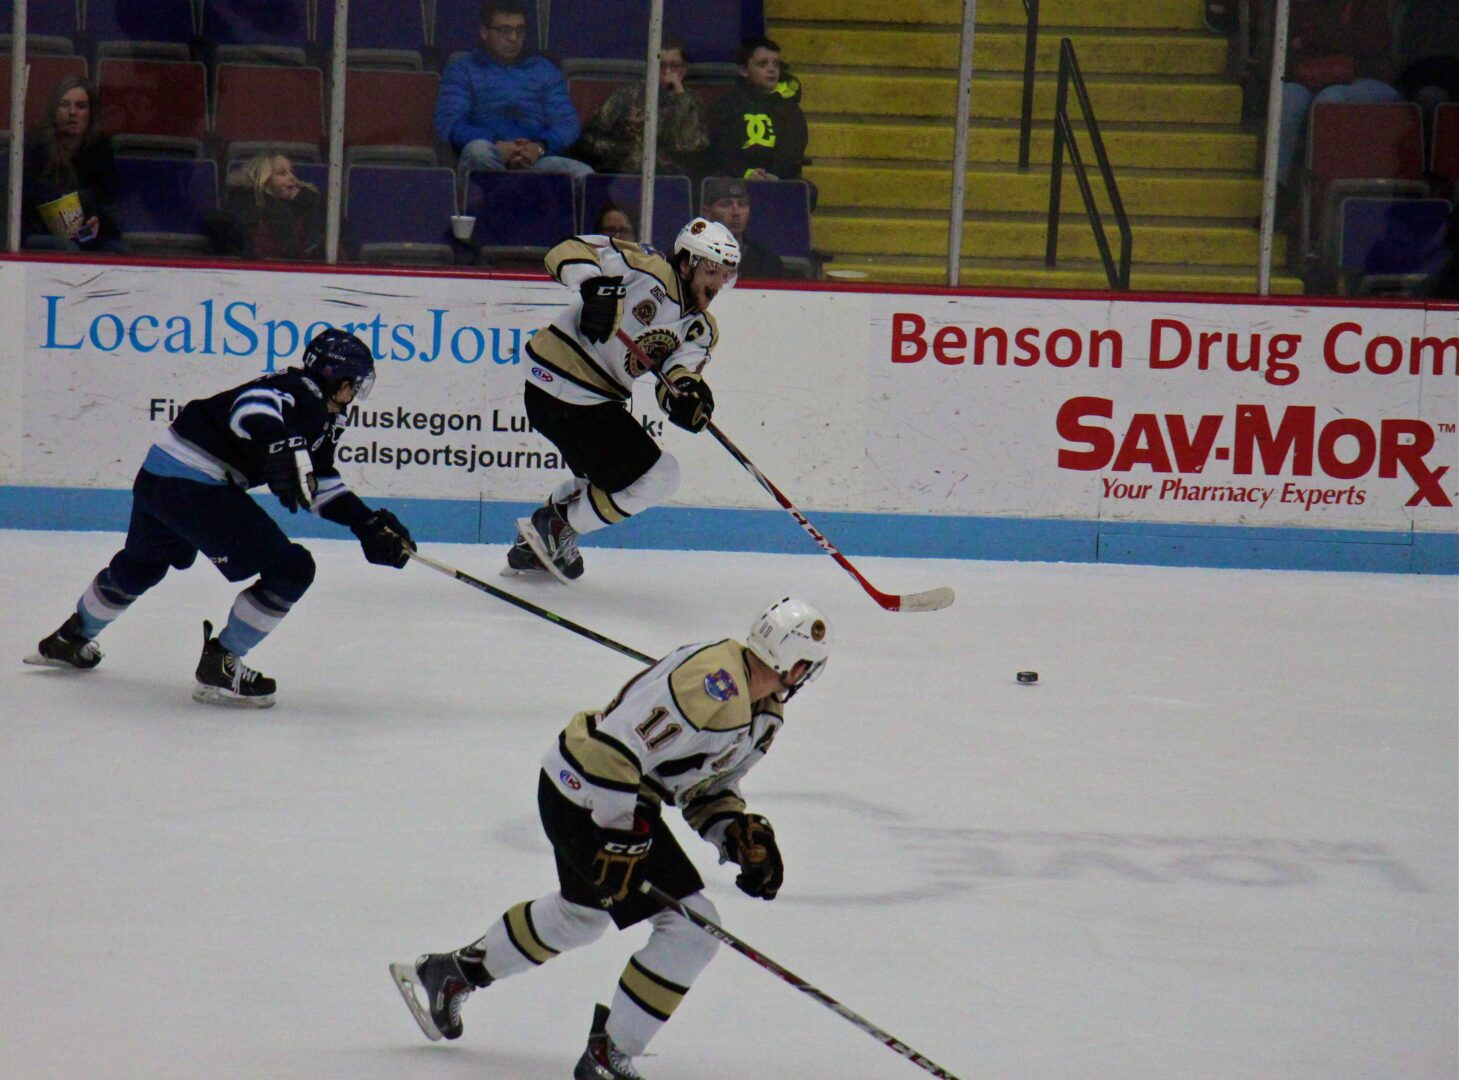 New players come through as Lumberjacks end losing streak with a 5-4 shootout victory over Madison [VIDEO]